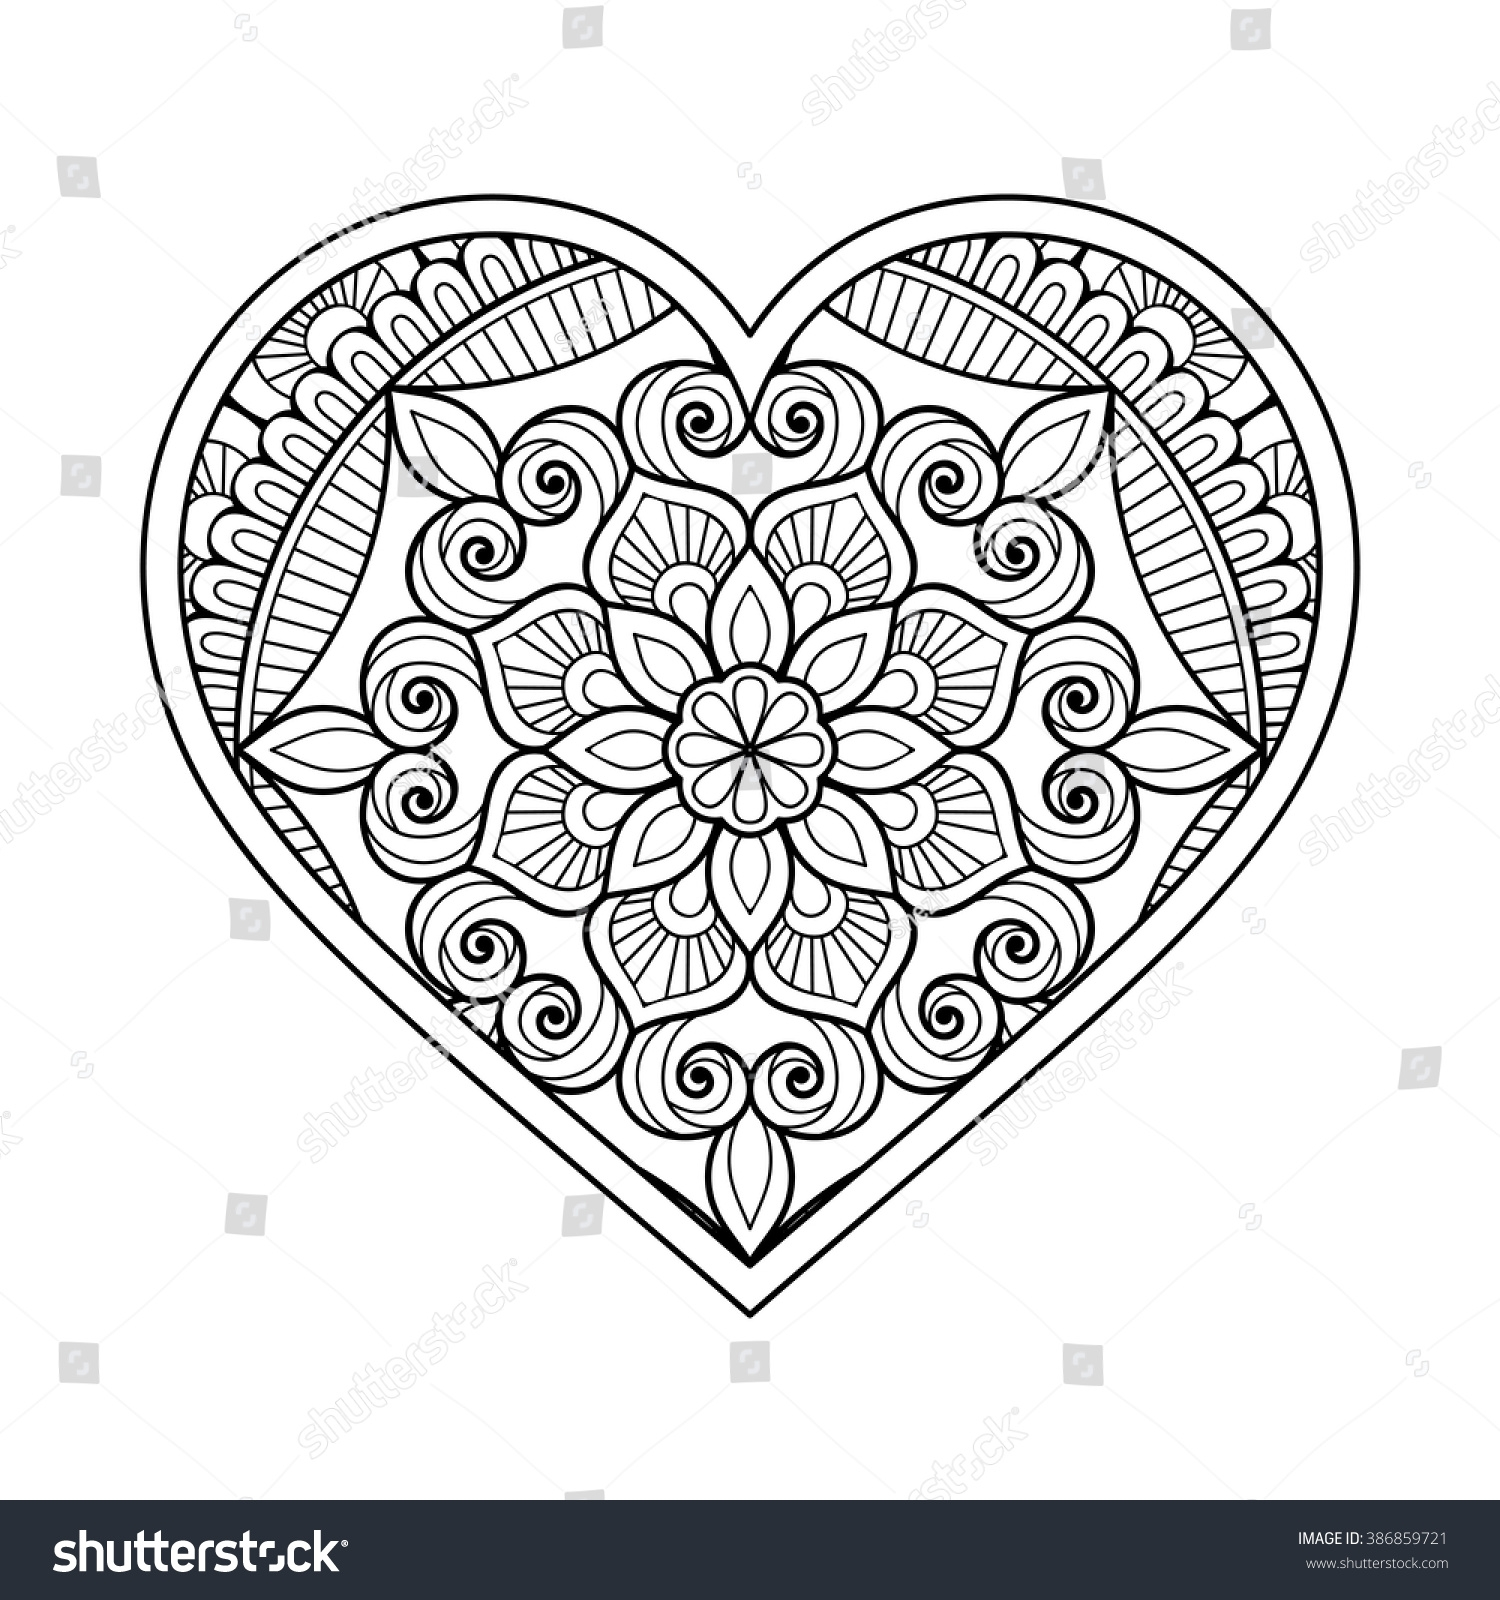 floral coloring pages - heart floral mandala vintage decorative elements